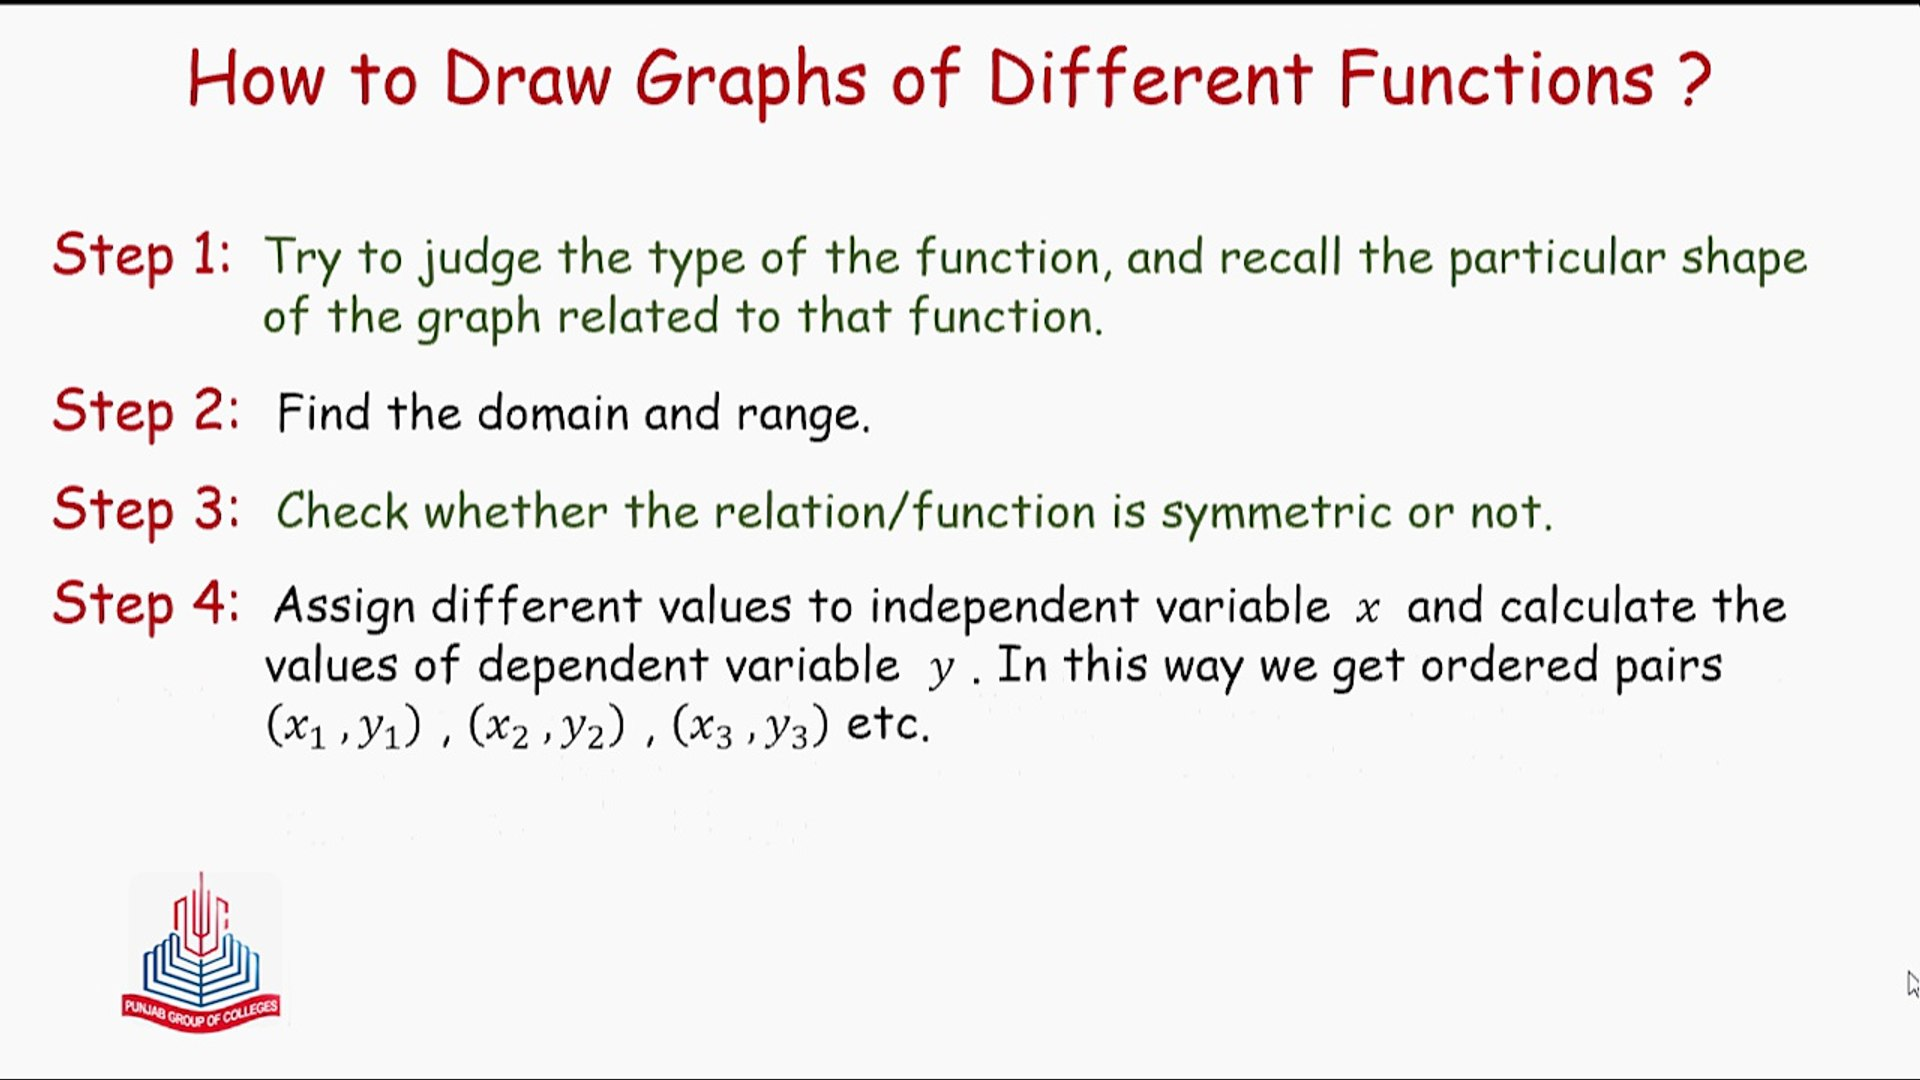 How to draw graphs of different functions ?